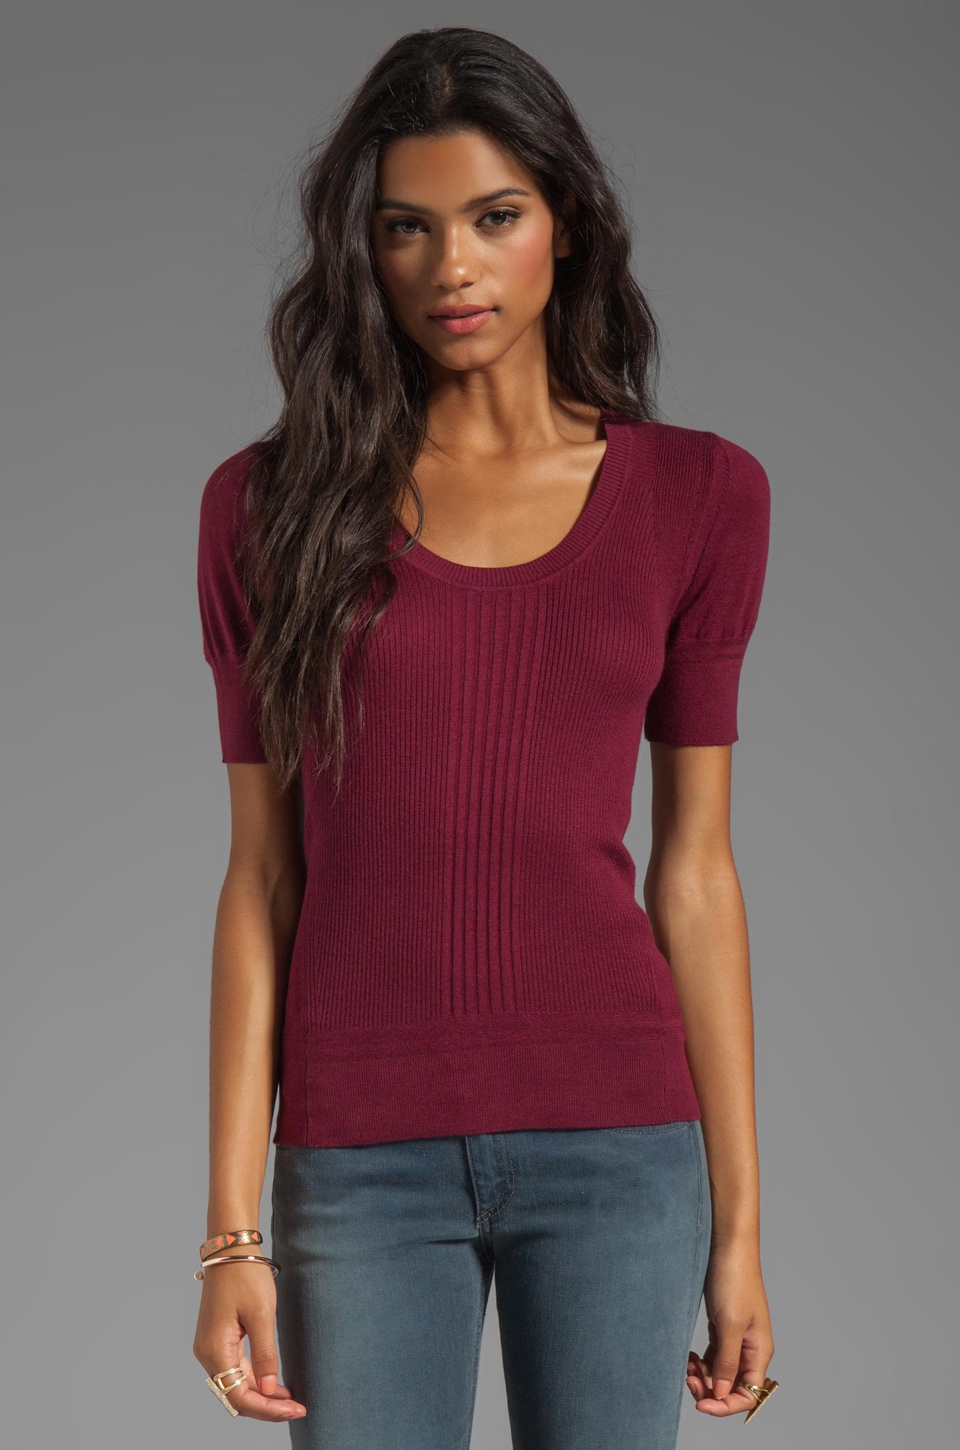 Marc by Marc Jacobs Owen Sweater Pullover in Merlot